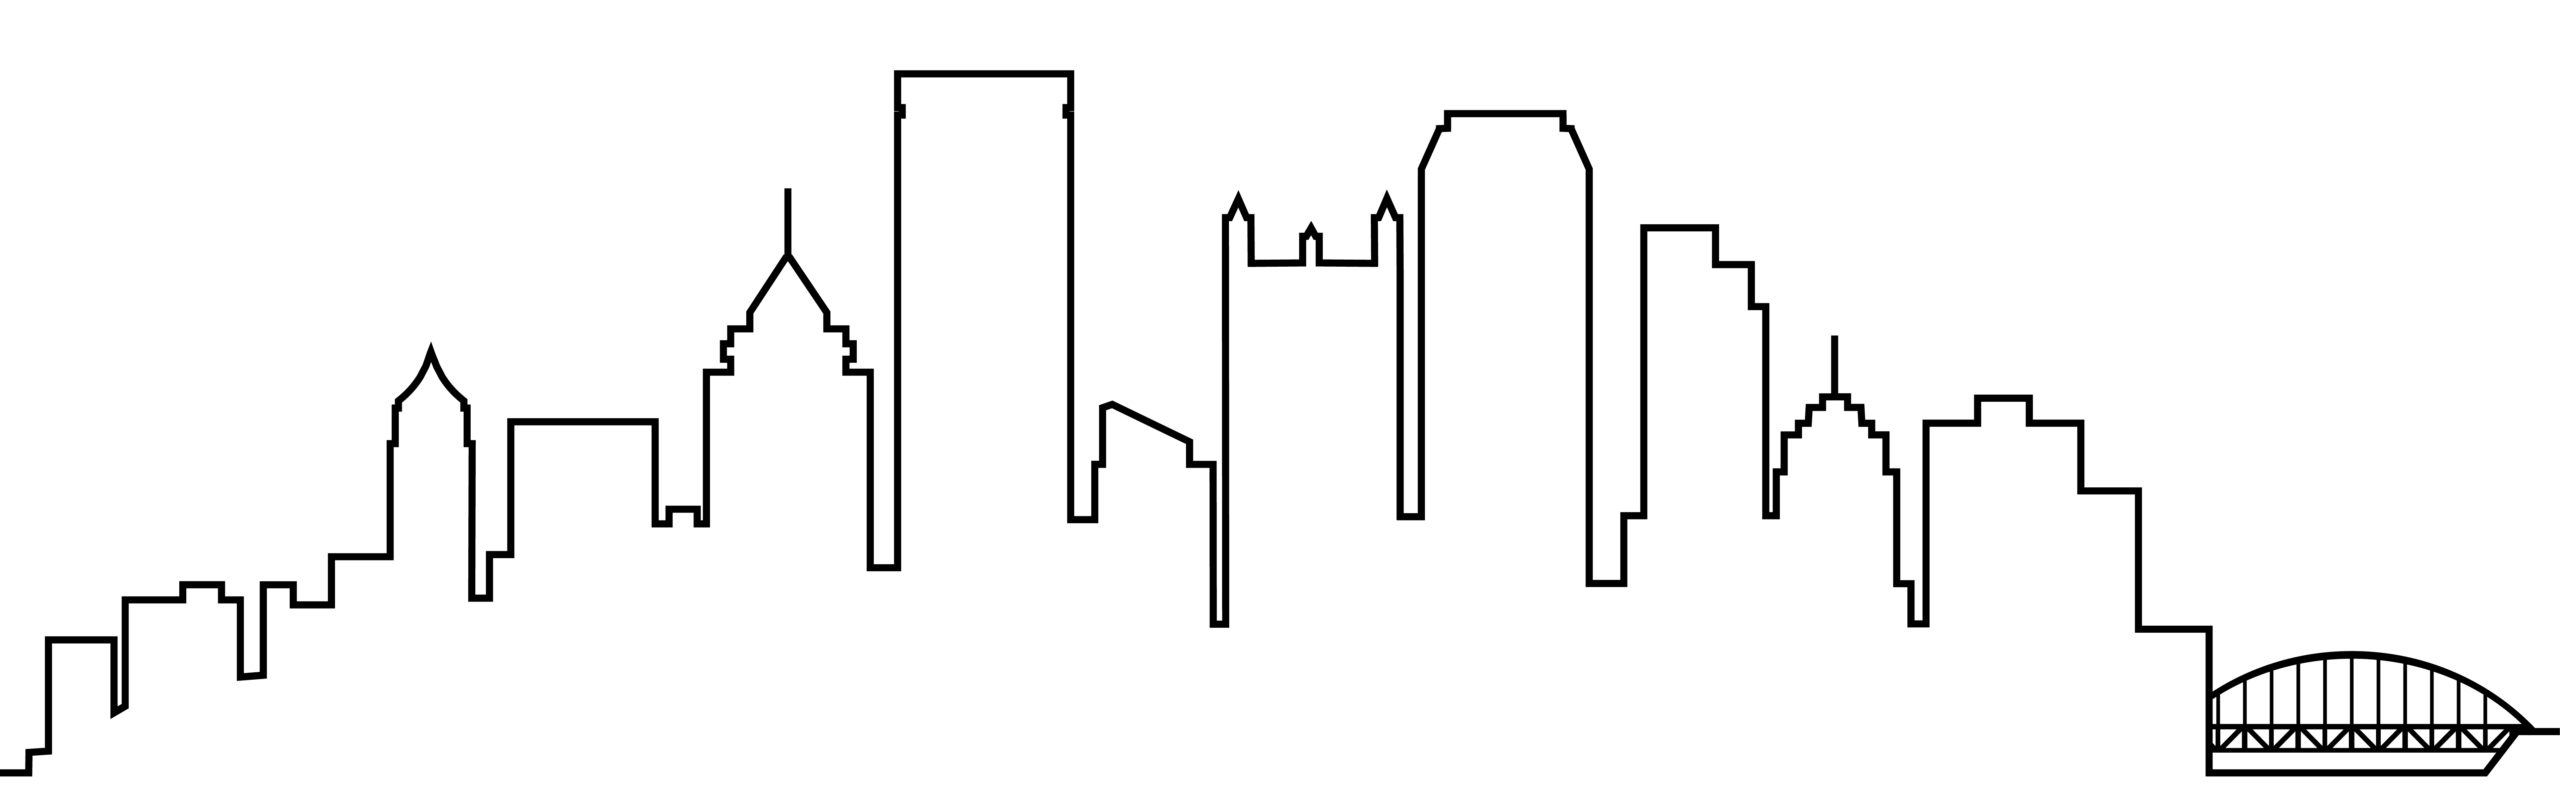 Pittsburgh wireframe